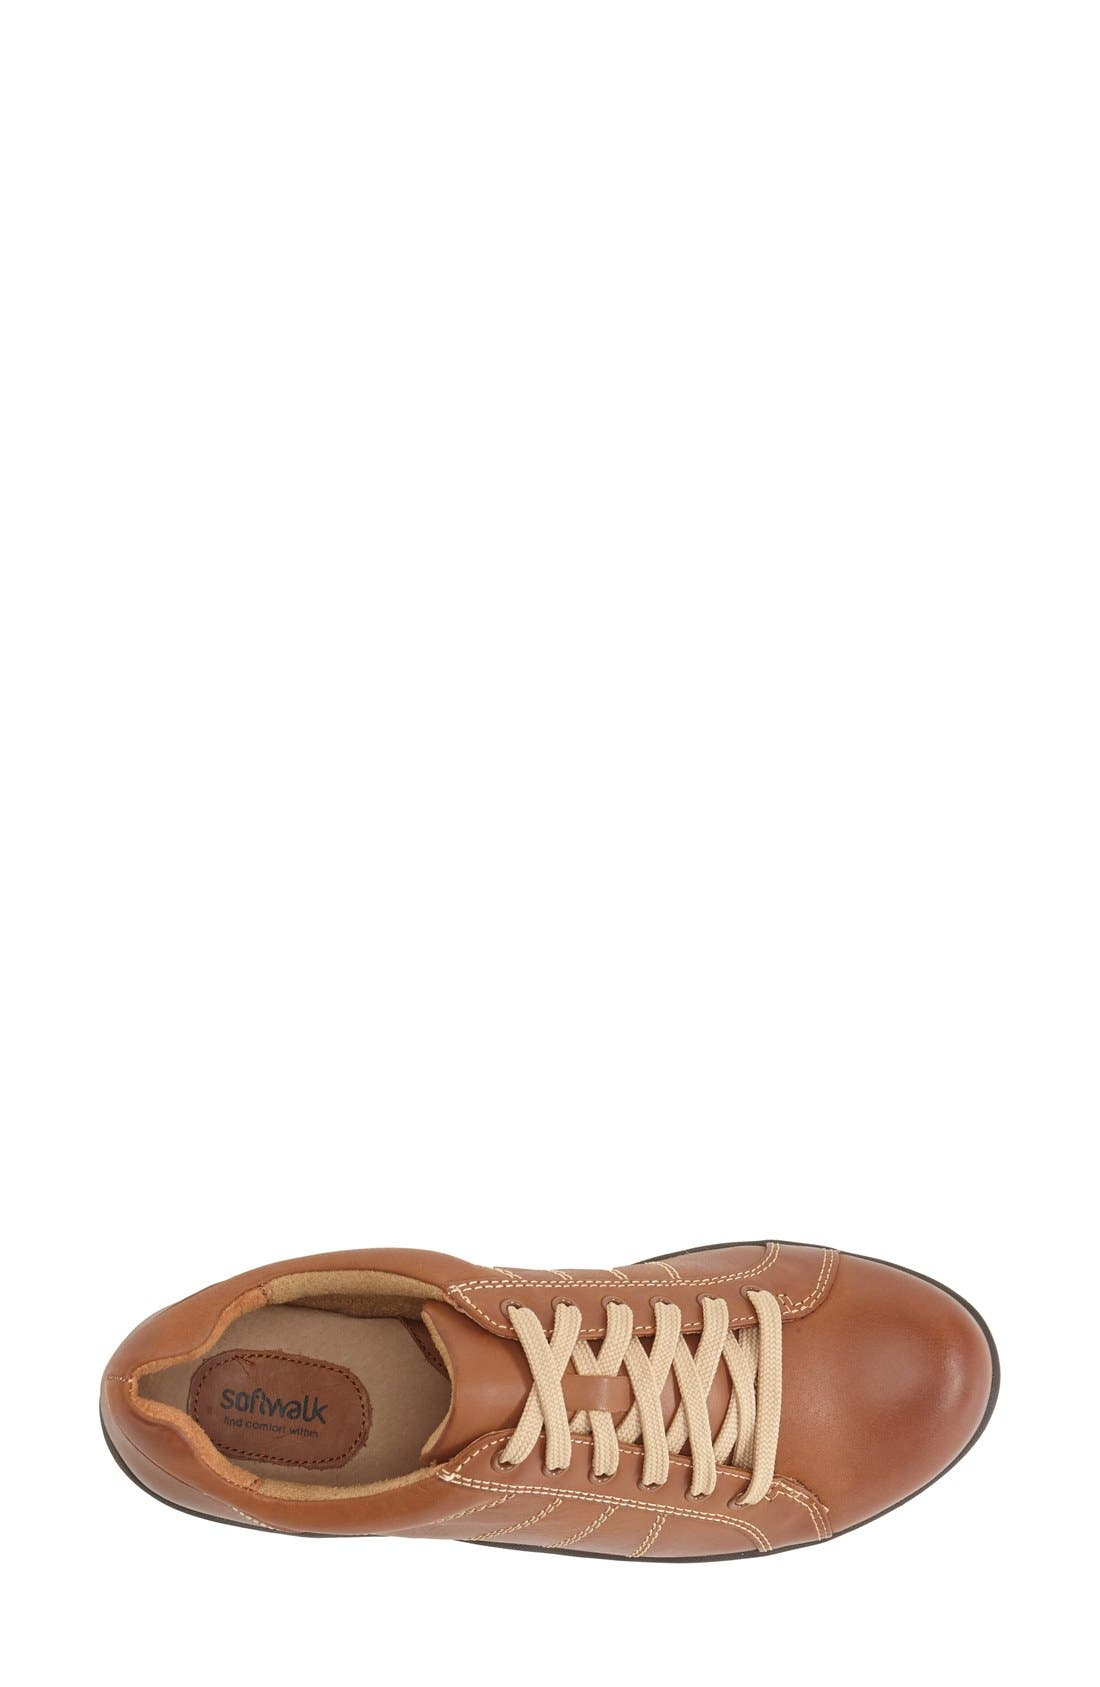 'Hickory' Sneaker,                             Alternate thumbnail 3, color,                             Luggage